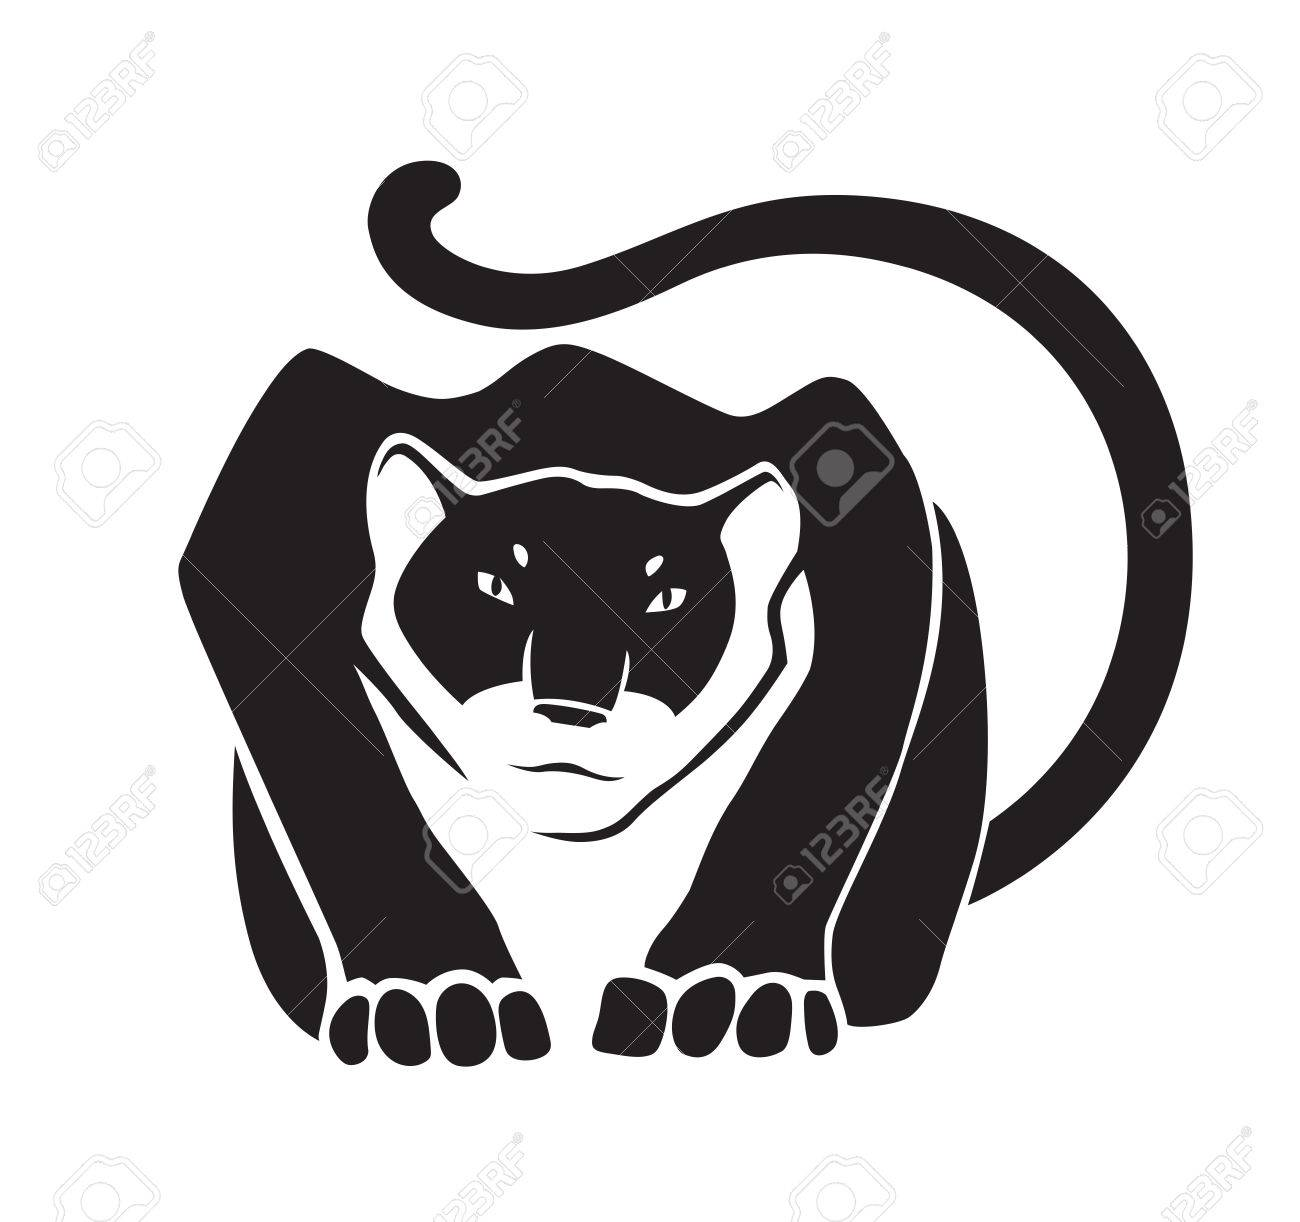 Black Panther On White Background Wild Animal As Logo Or Mascot Royalty Free Cliparts Vectors And Stock Illustration Image 70036366